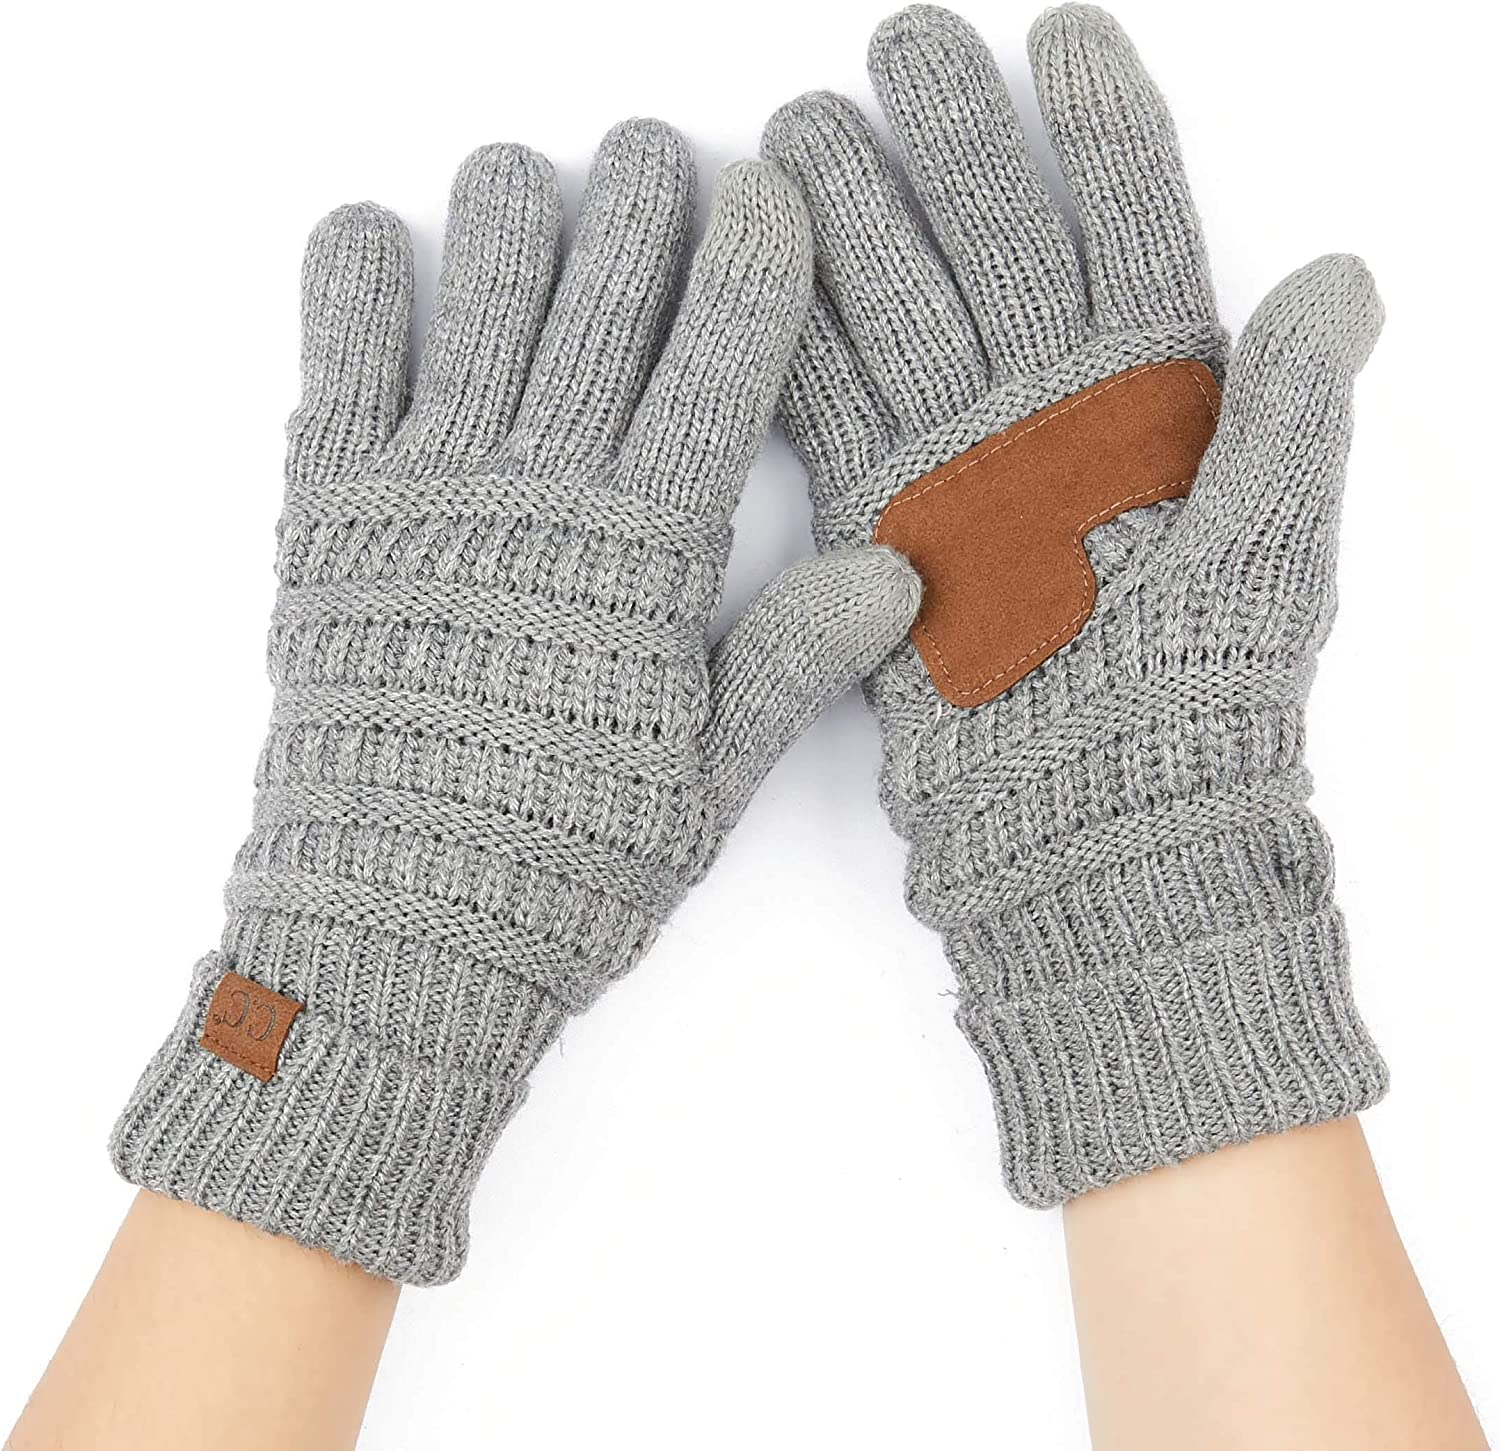 C.C Unisex Knit Thick Warm Soft Stretch Fuzzy Lined Solid Ribbed Glove with Smart Tips (G-25)(G-707)